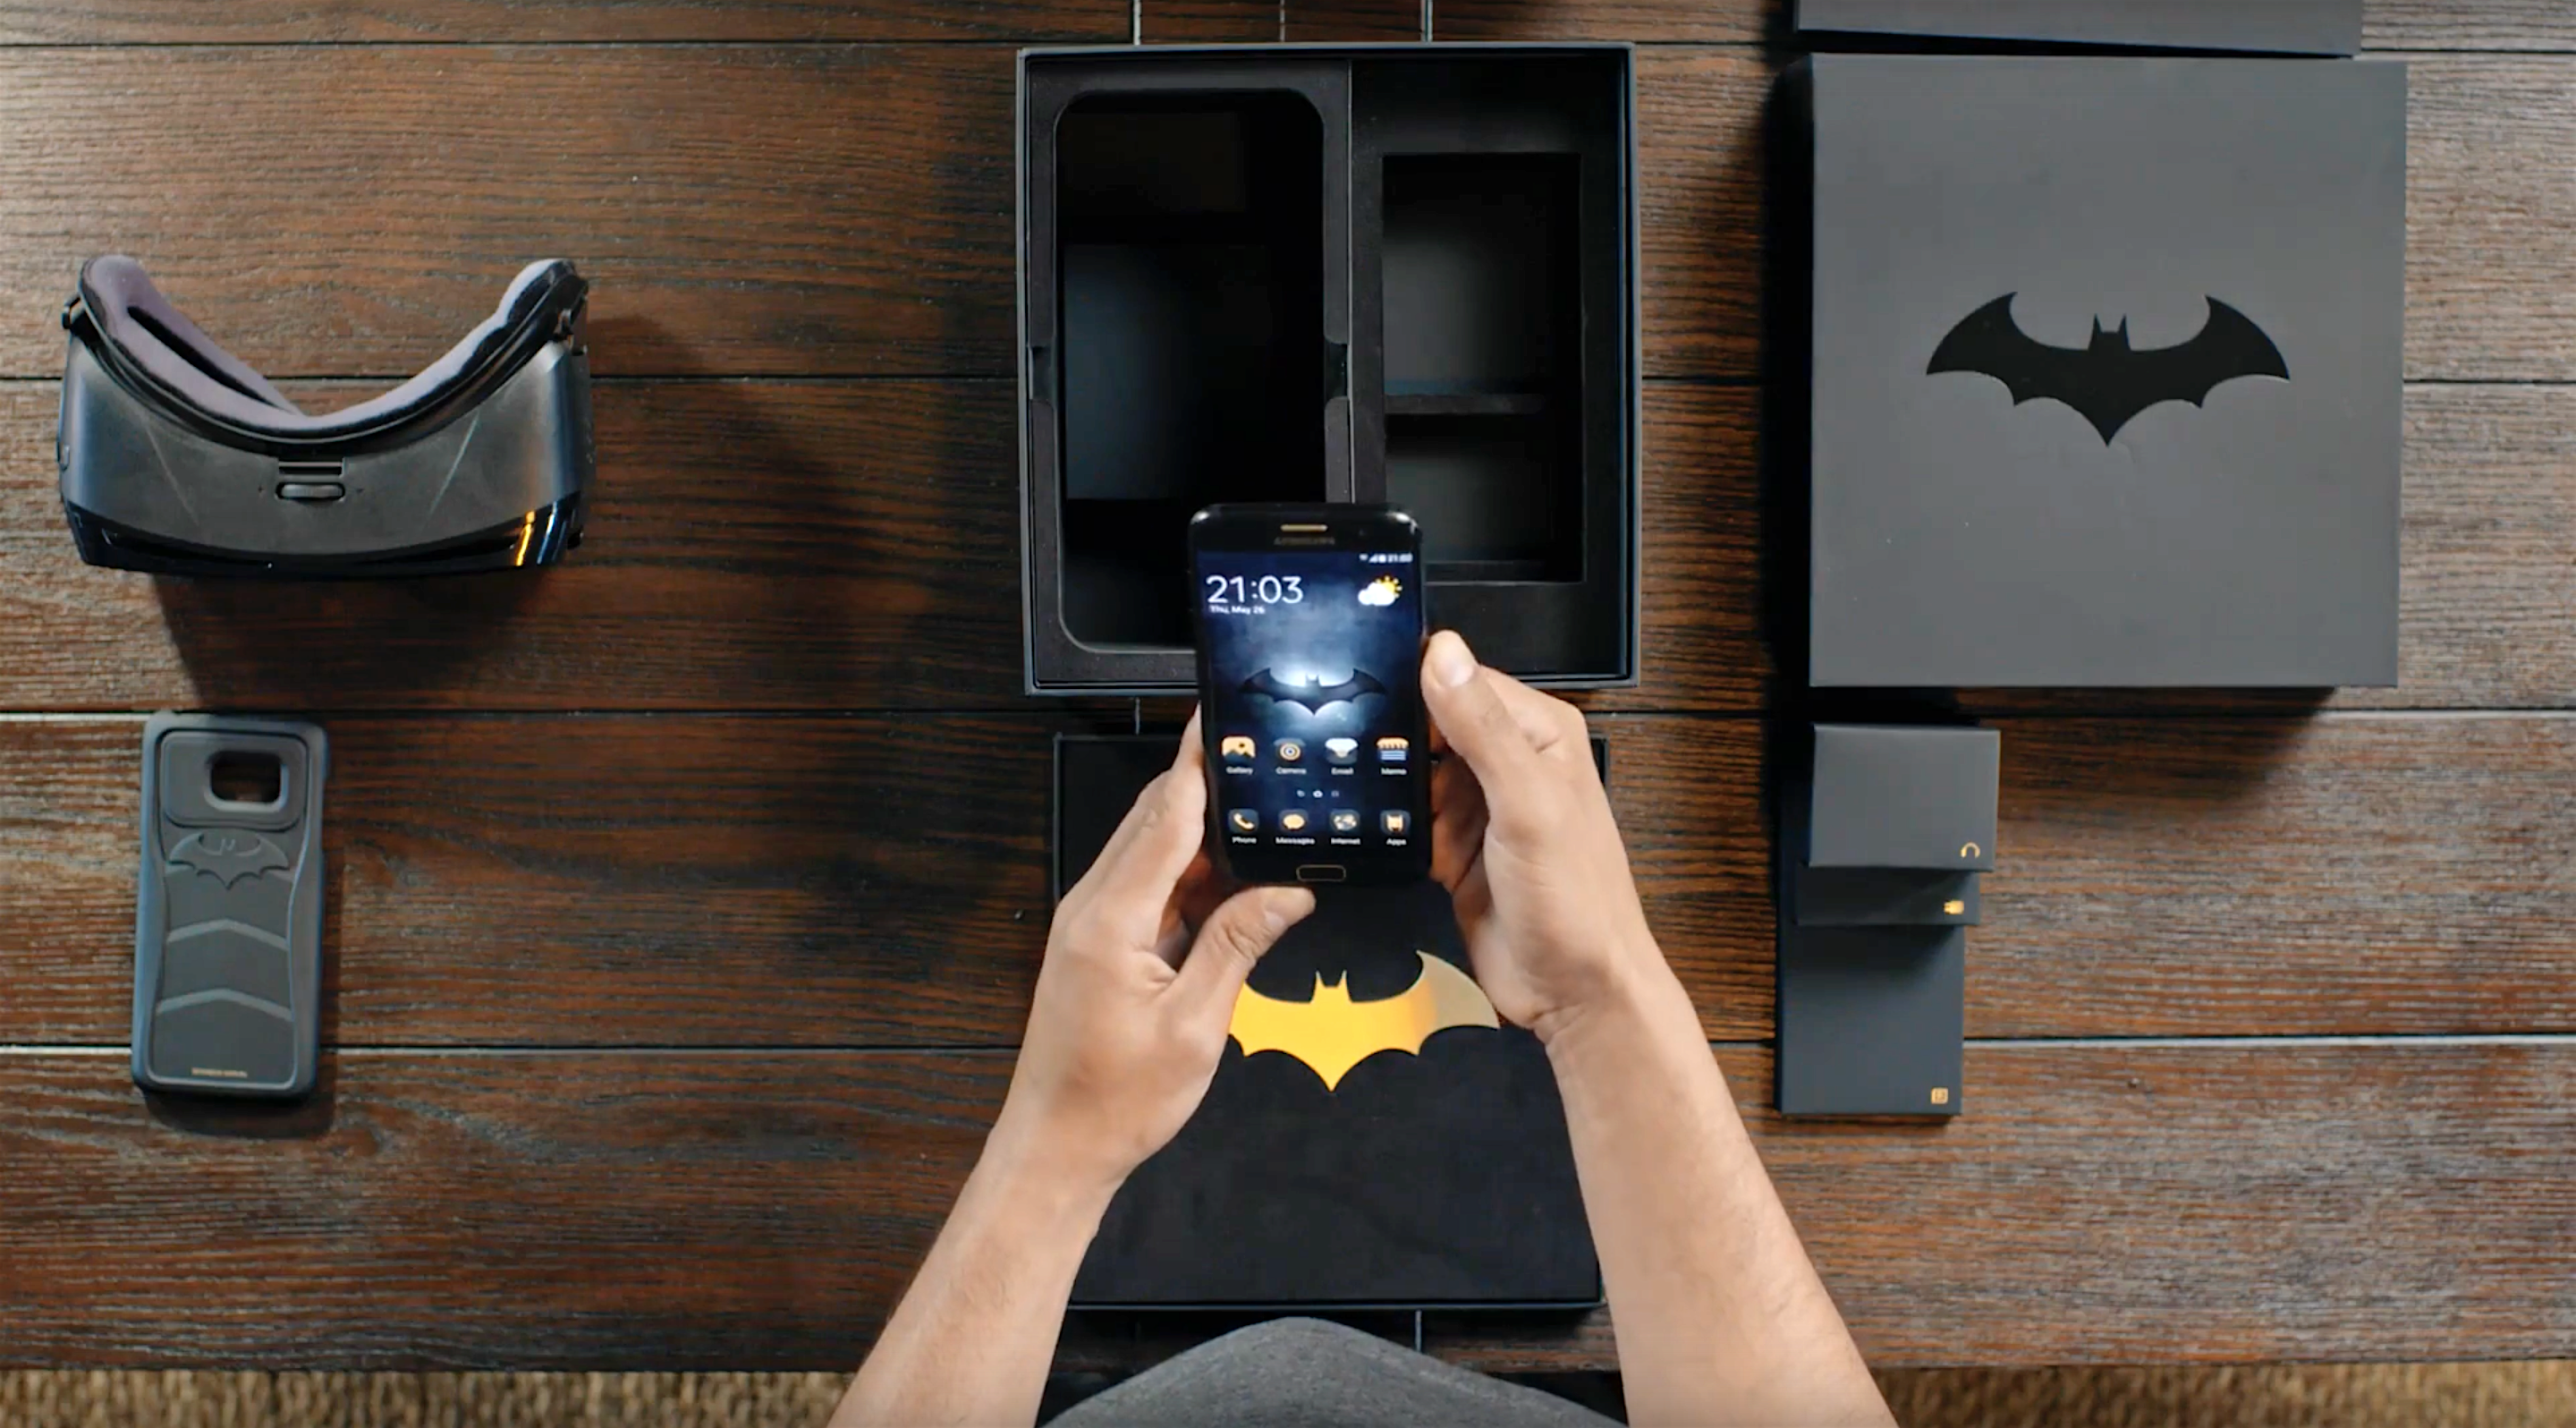 https://vidooly.com/blog/wp-content/uploads/2016/07/Samsung-Galaxy-S7-Edge-Injustice-Edition-unboxing-2.png